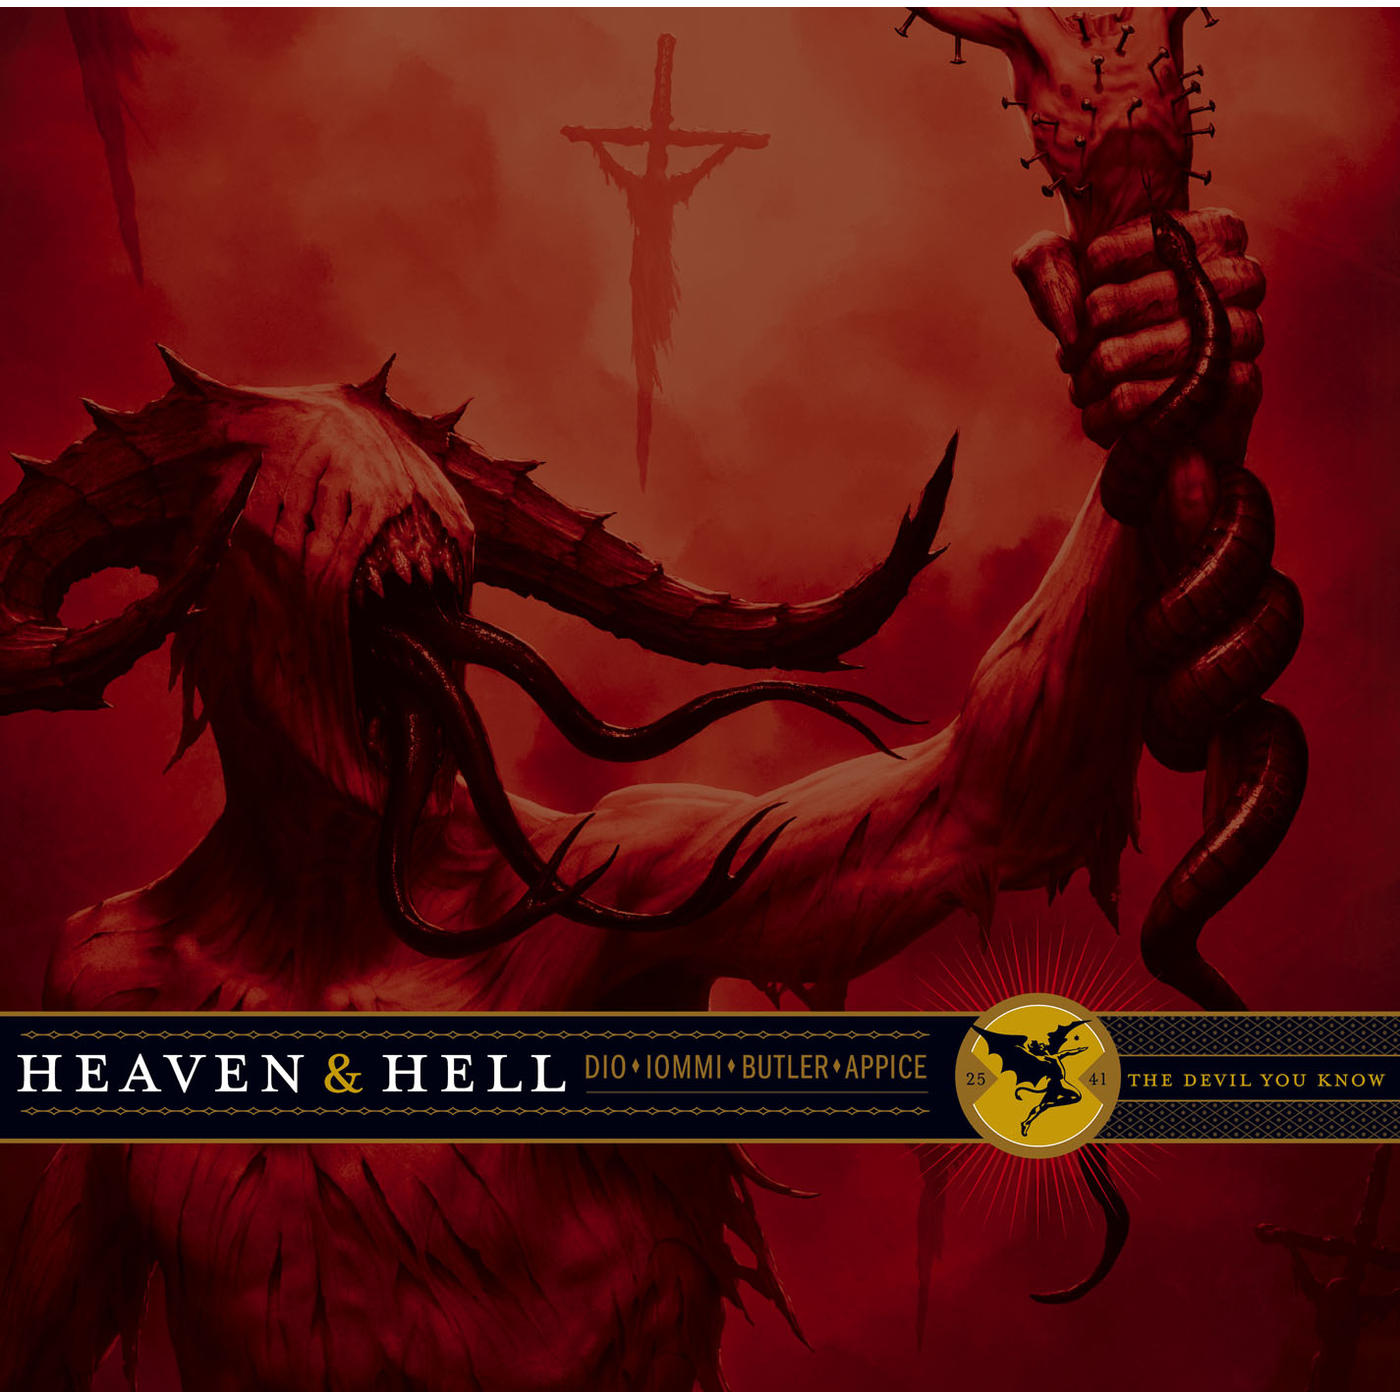 heaven_20hell_20the_20devil_20you_20know_202080813_jpg.jpg